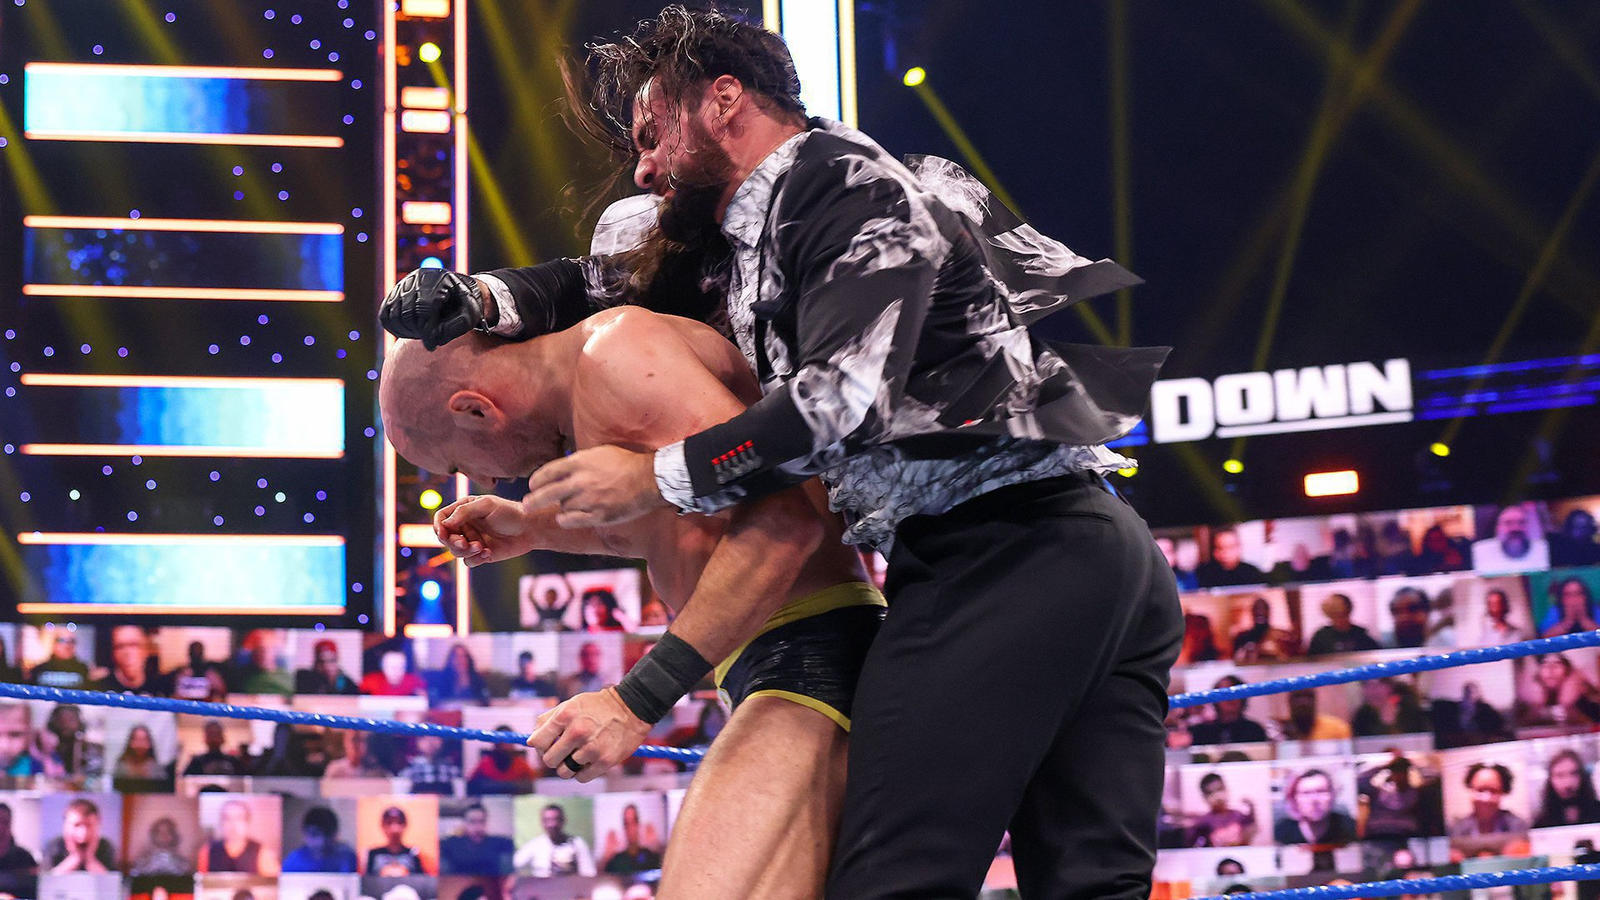 WWE Smackdown Preview (23/04/21): Wrestlemania Backlash Builds 179